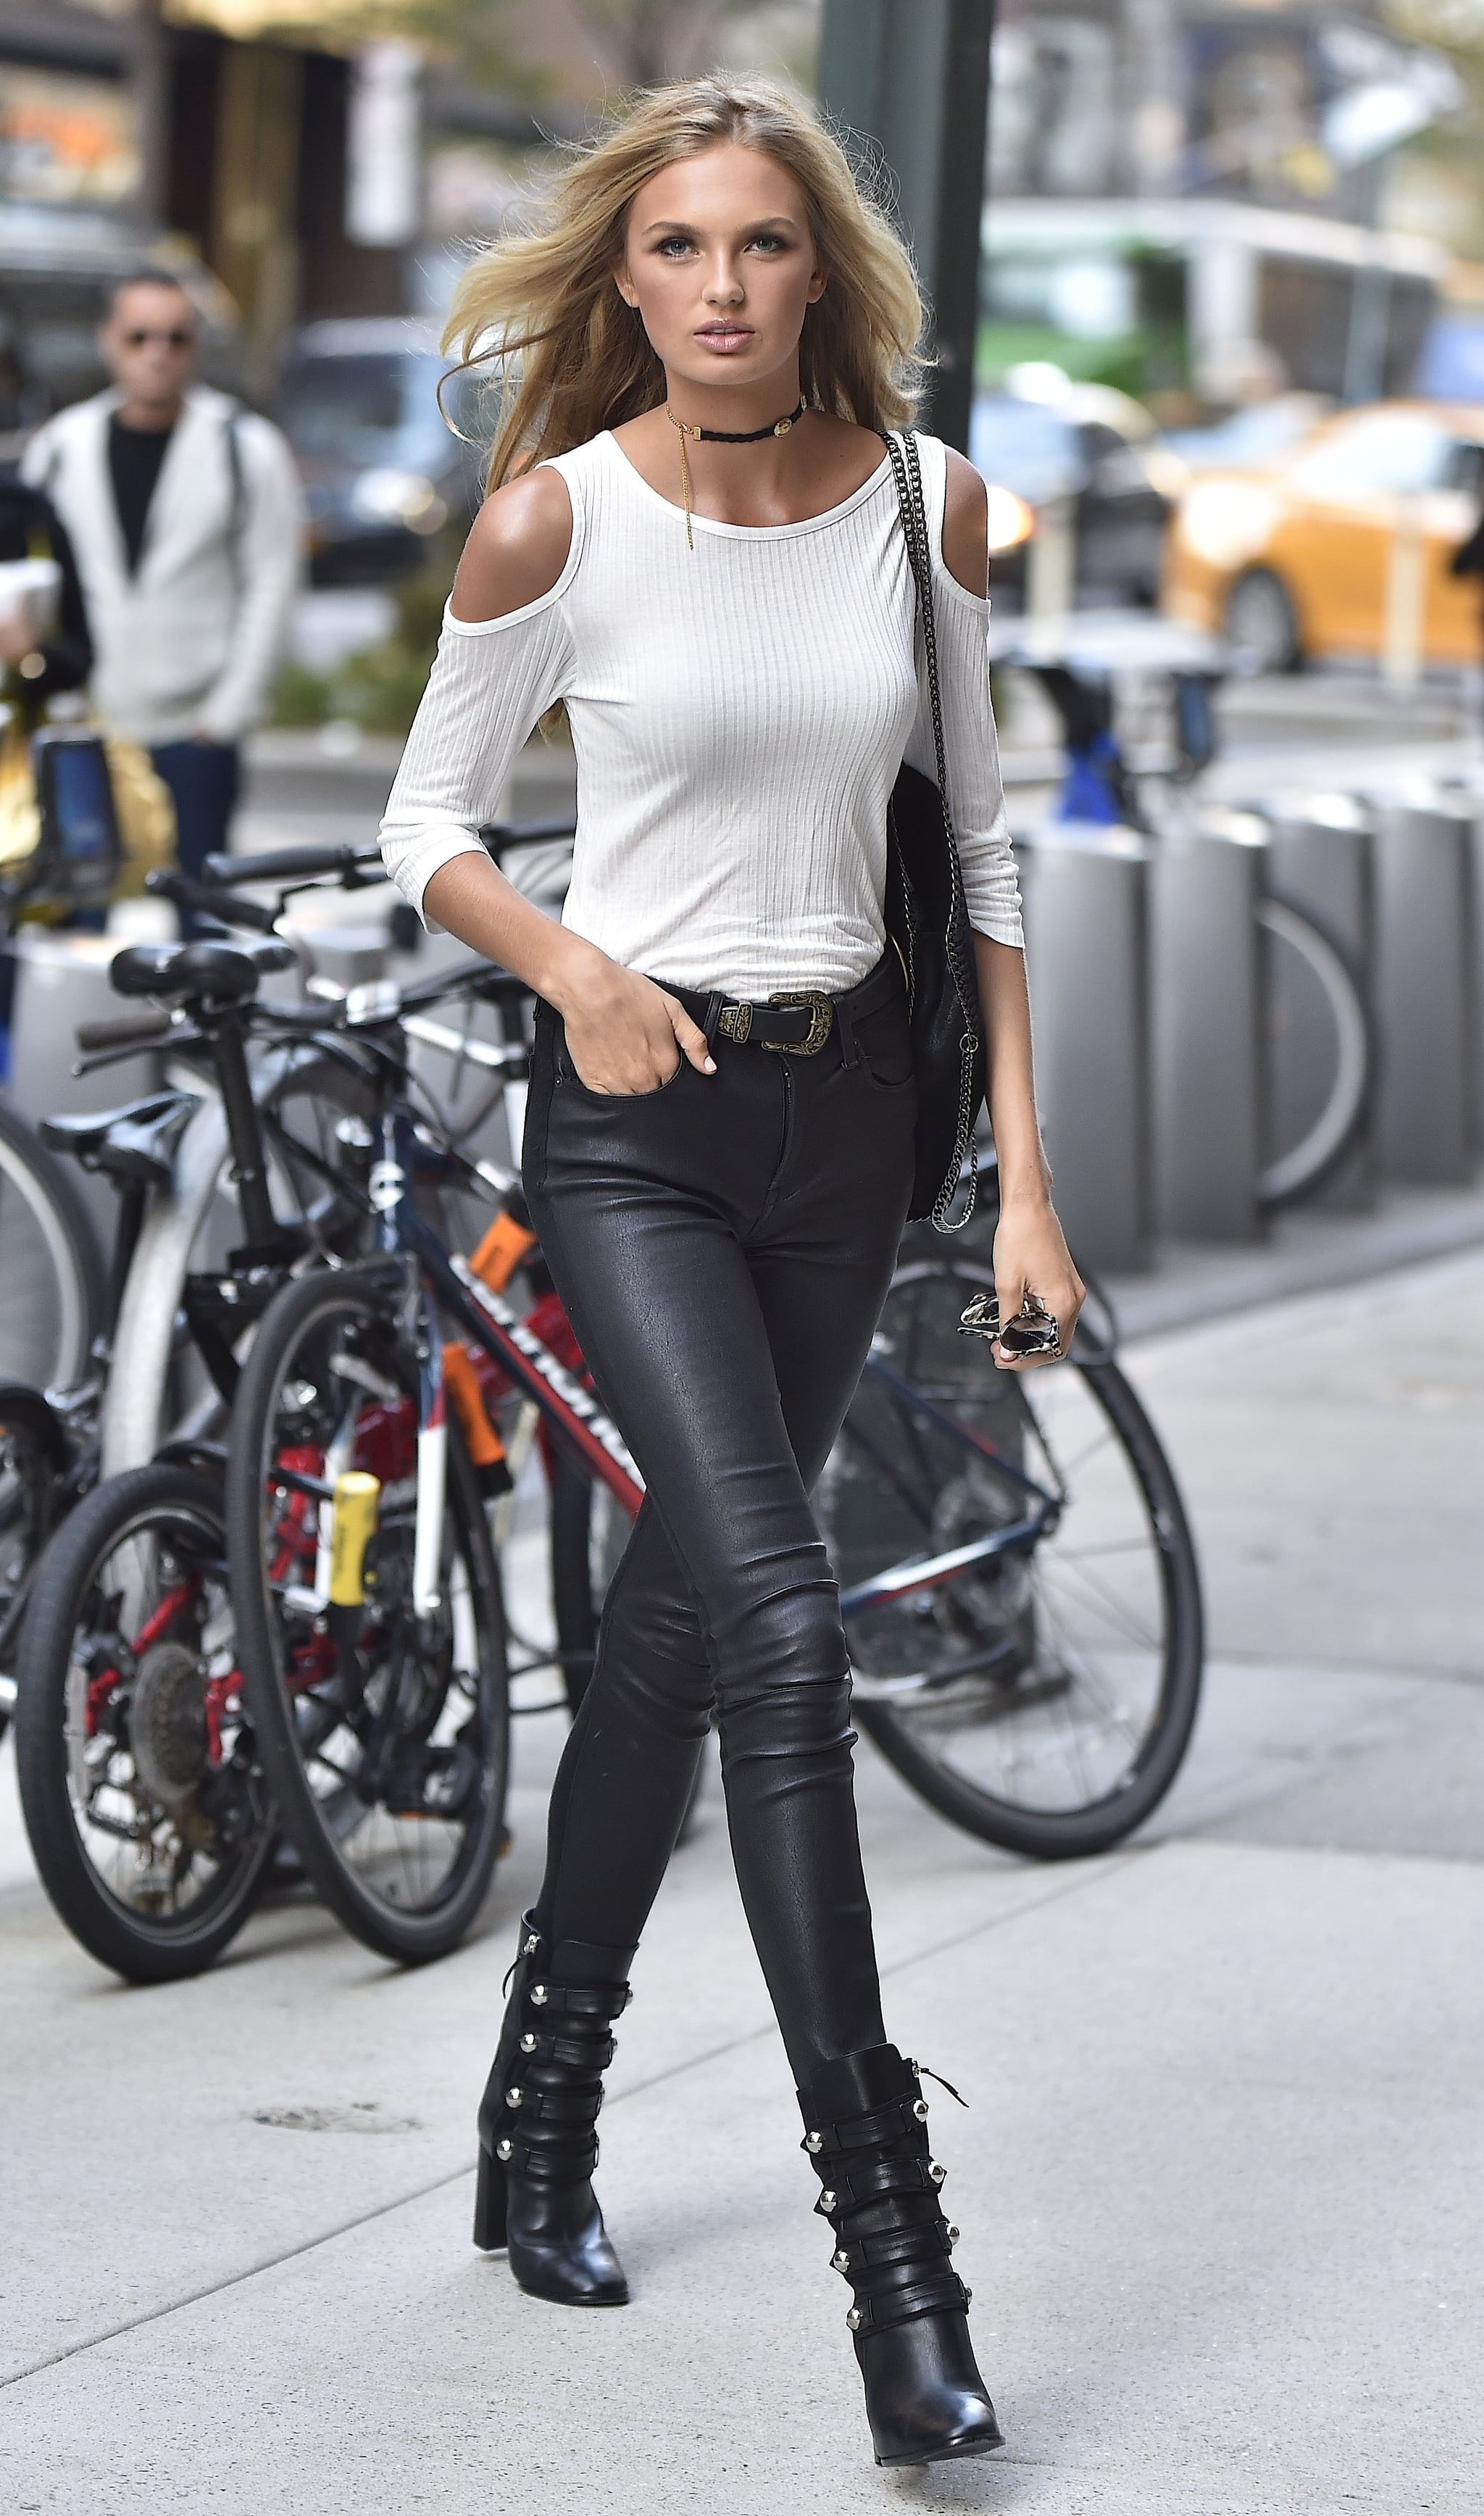 romee strijd stepped out in simple but sexy skintight leather pants these vs model off duty. Black Bedroom Furniture Sets. Home Design Ideas